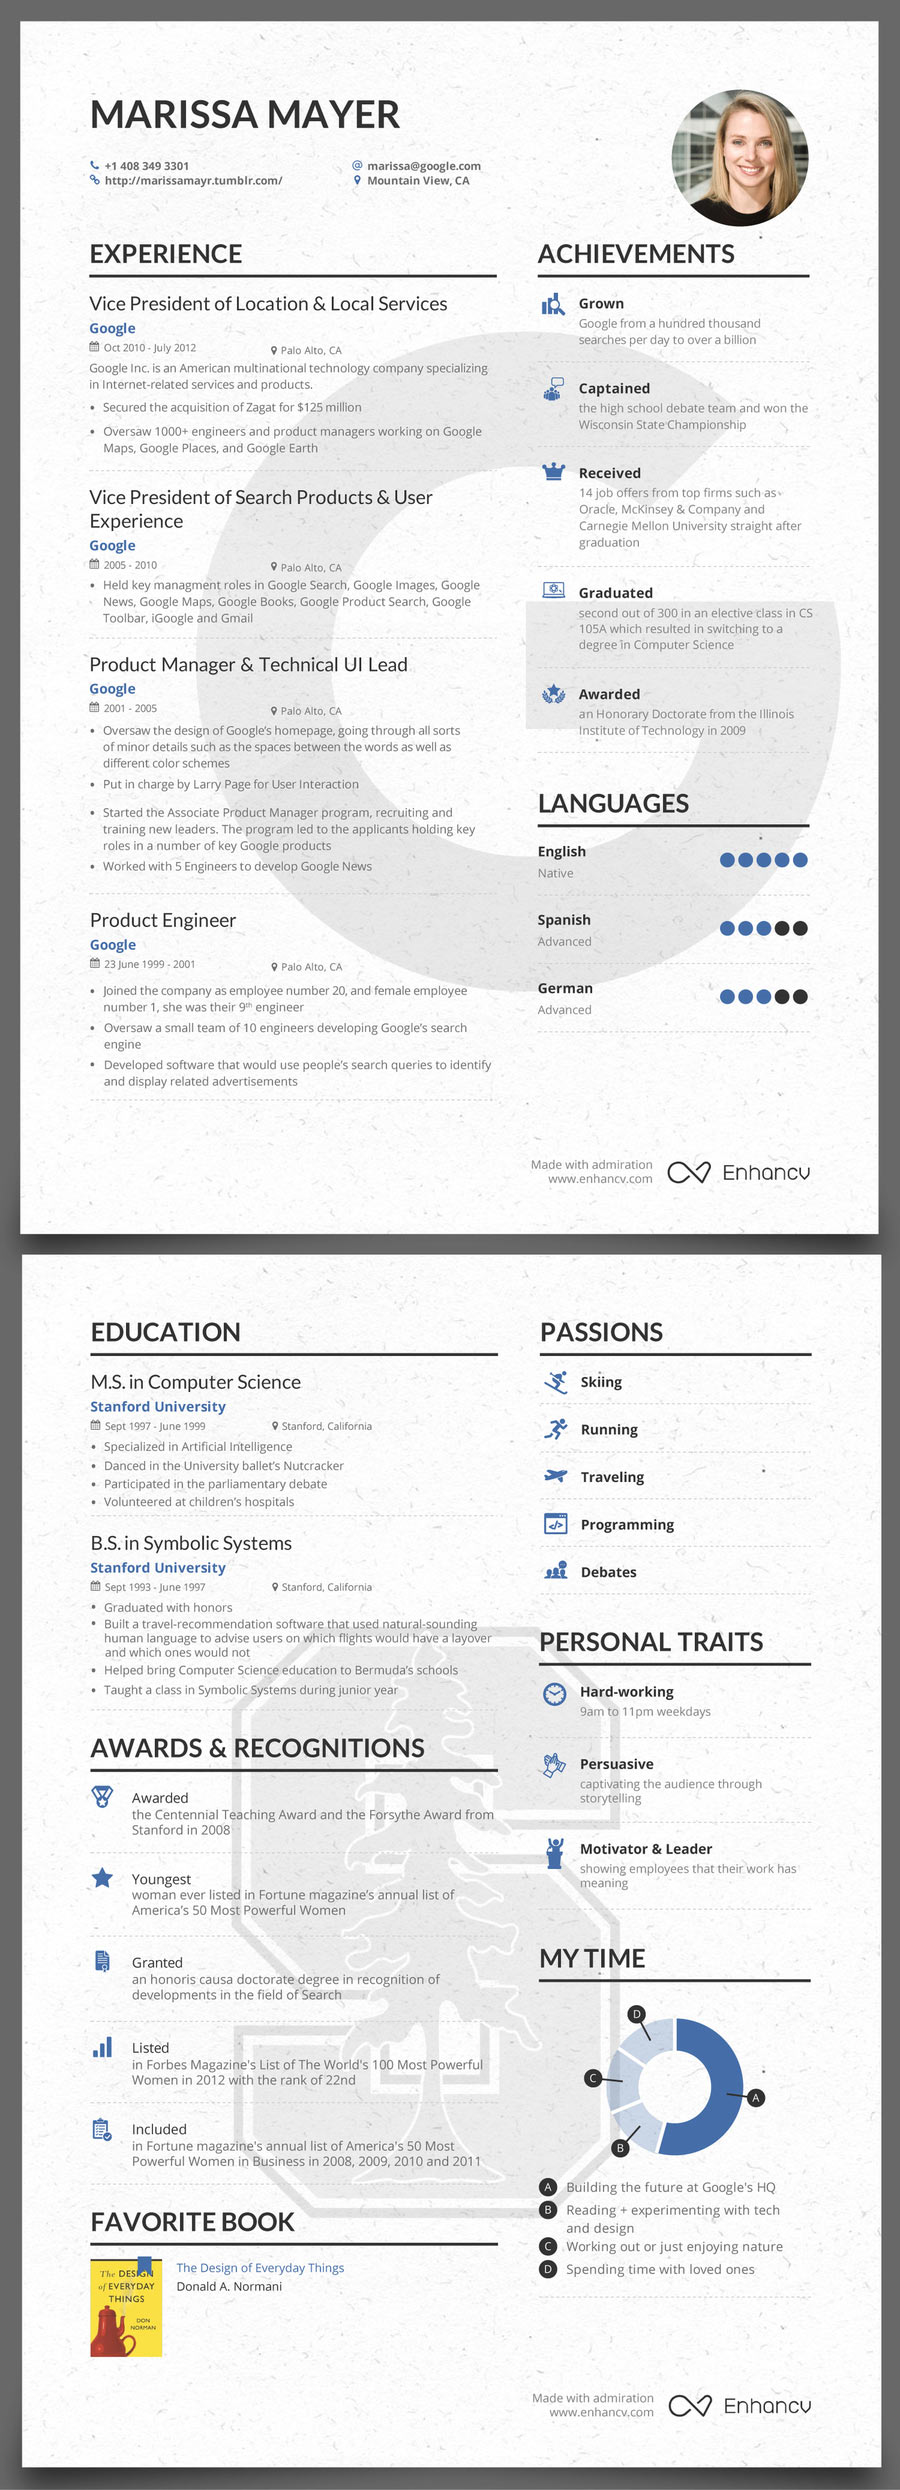 cv marissa mayer template